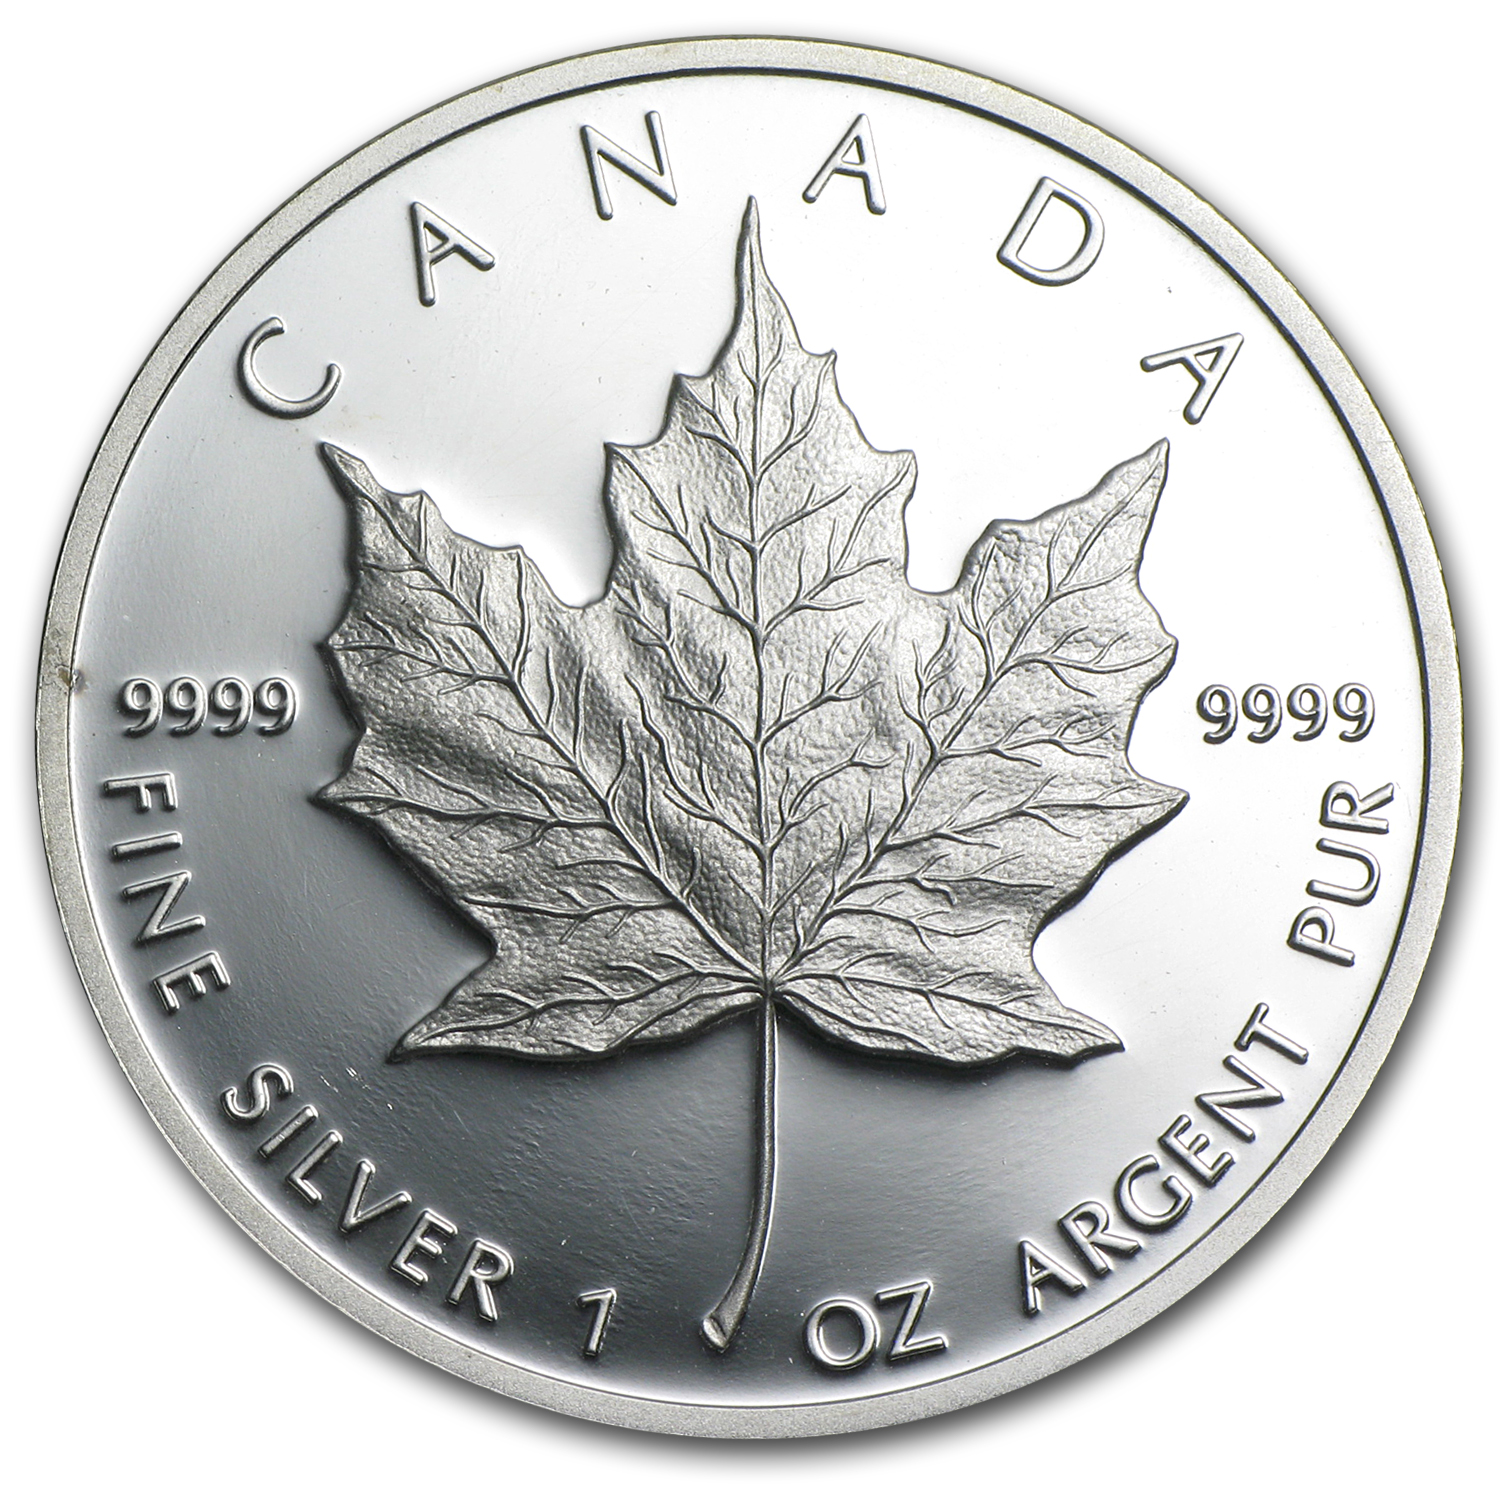 1989 Canada 1 oz Proof Silver Maple Leaf (No Box or COA)